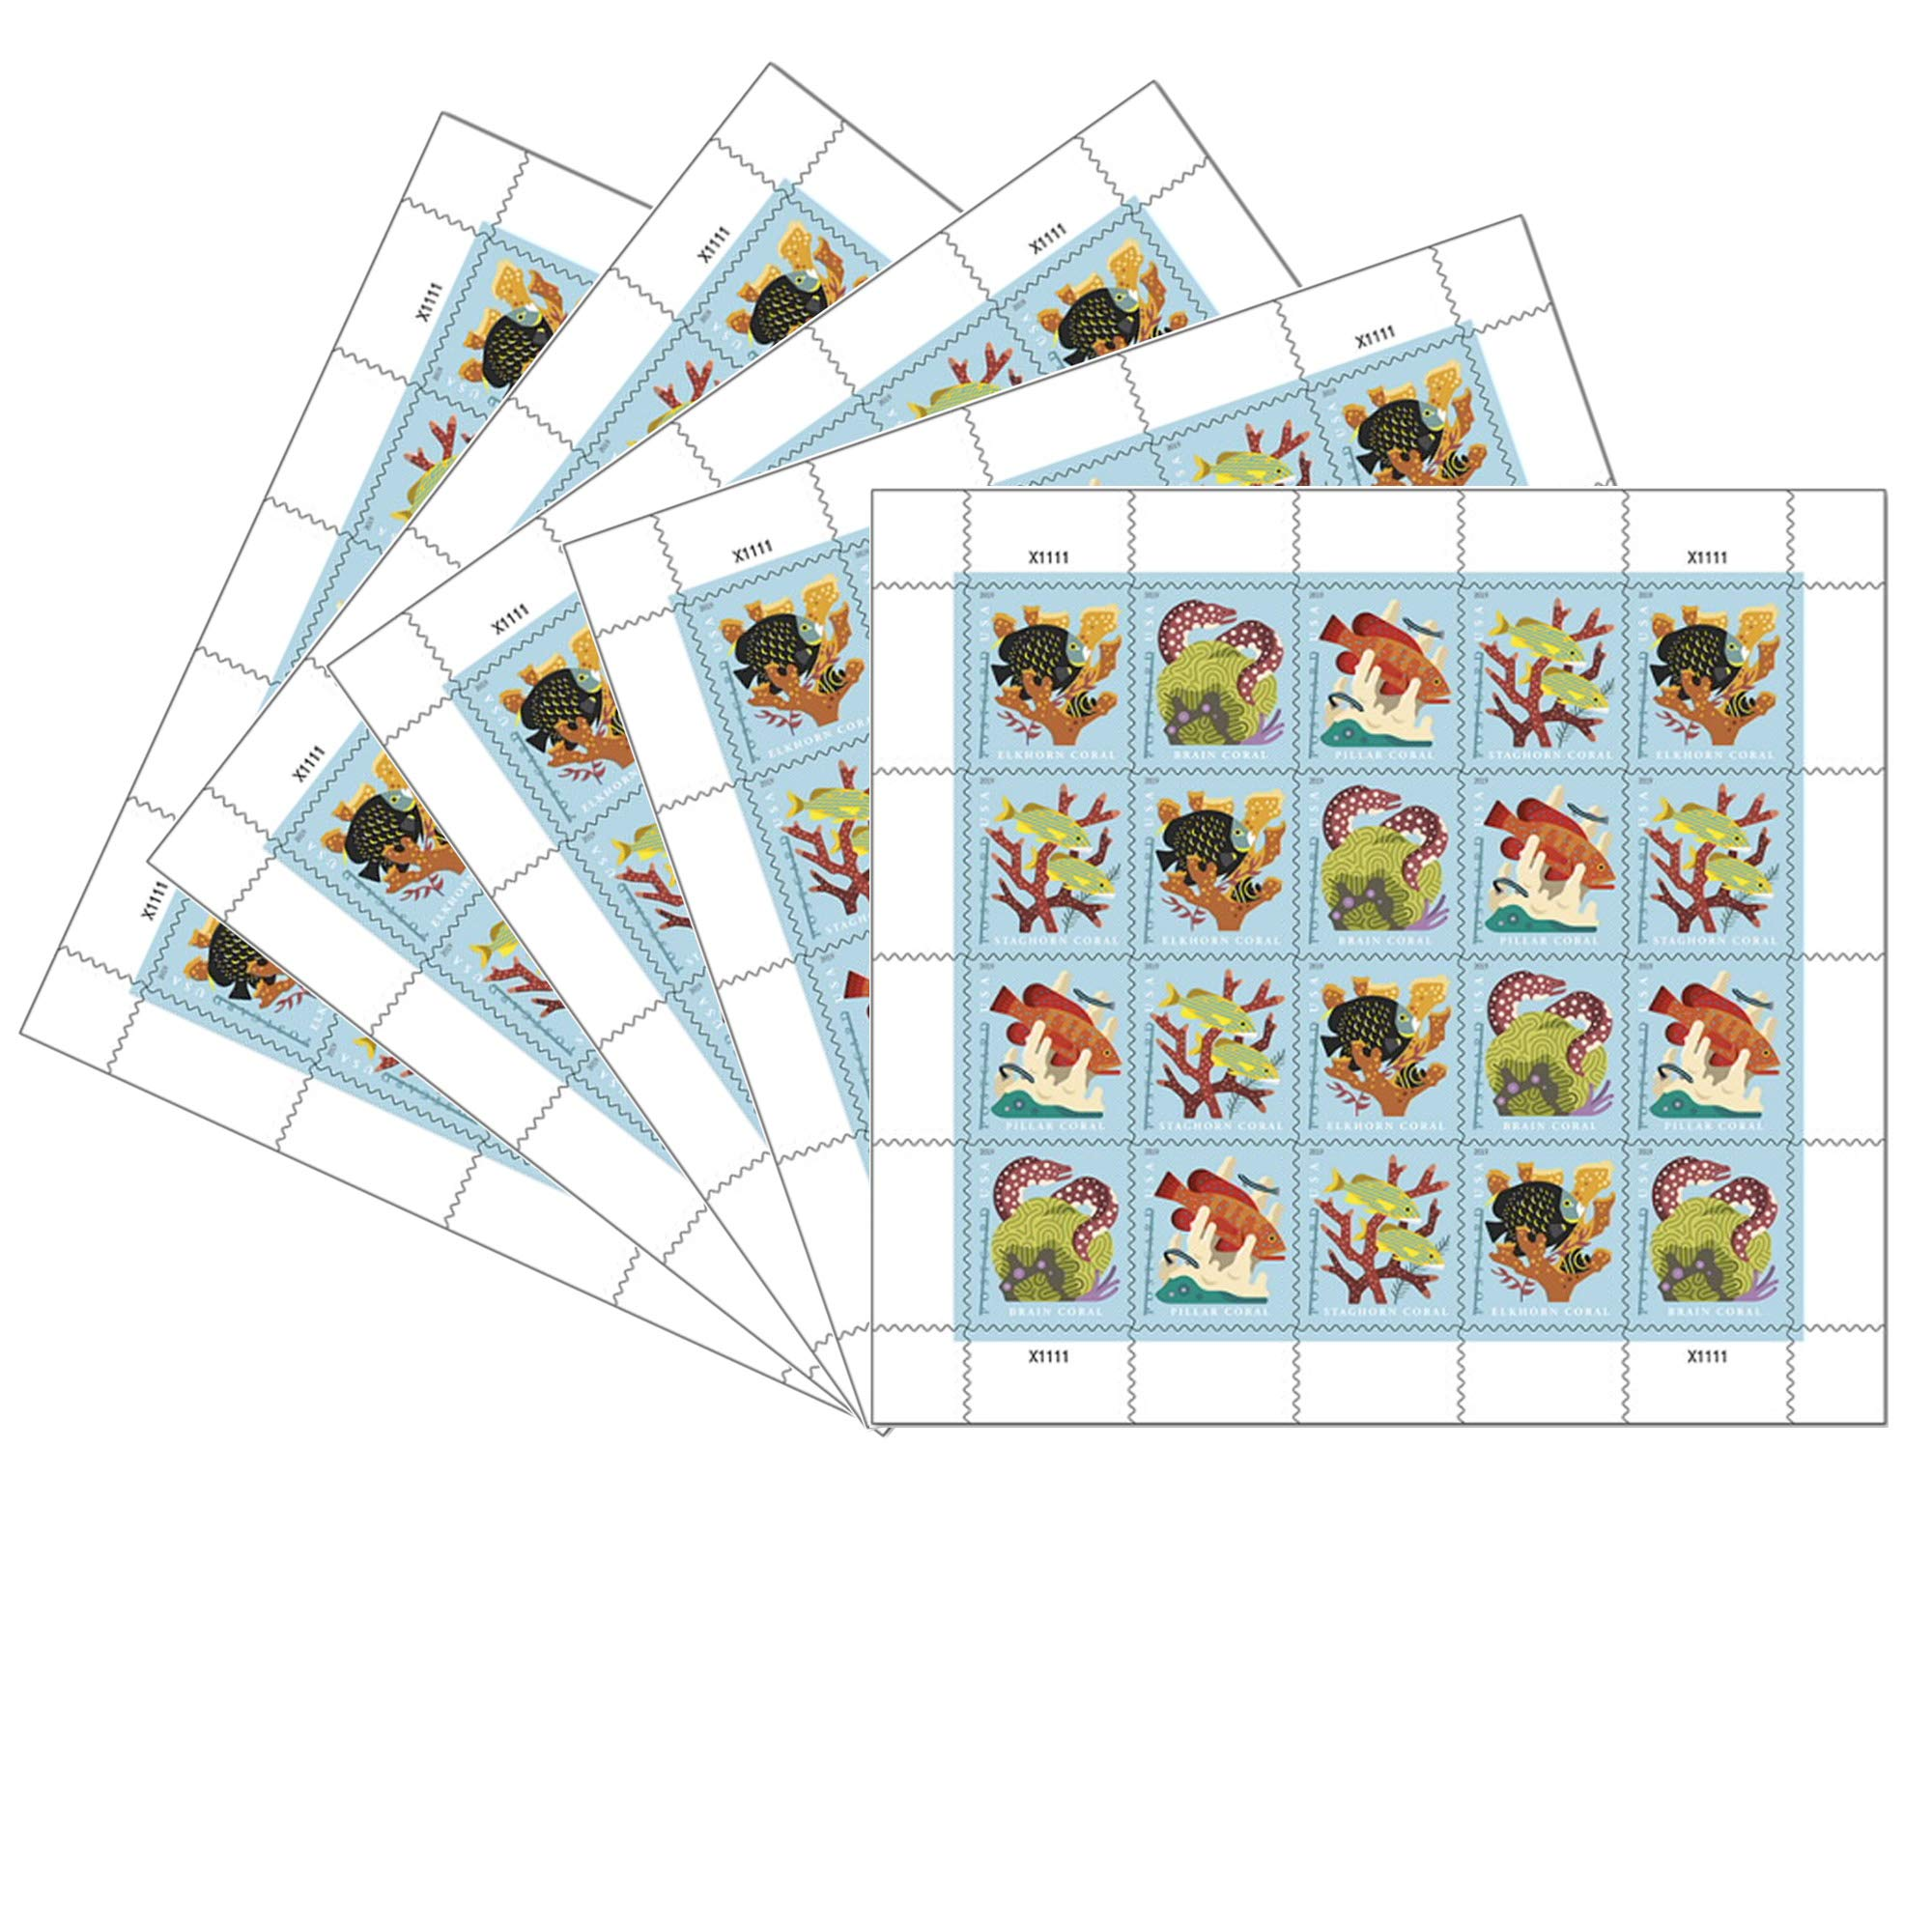 Coral Reefs Postcard 5 Sheets of 20 First Class Forever Postcard Postage Stamps Sea (100 Stamps)